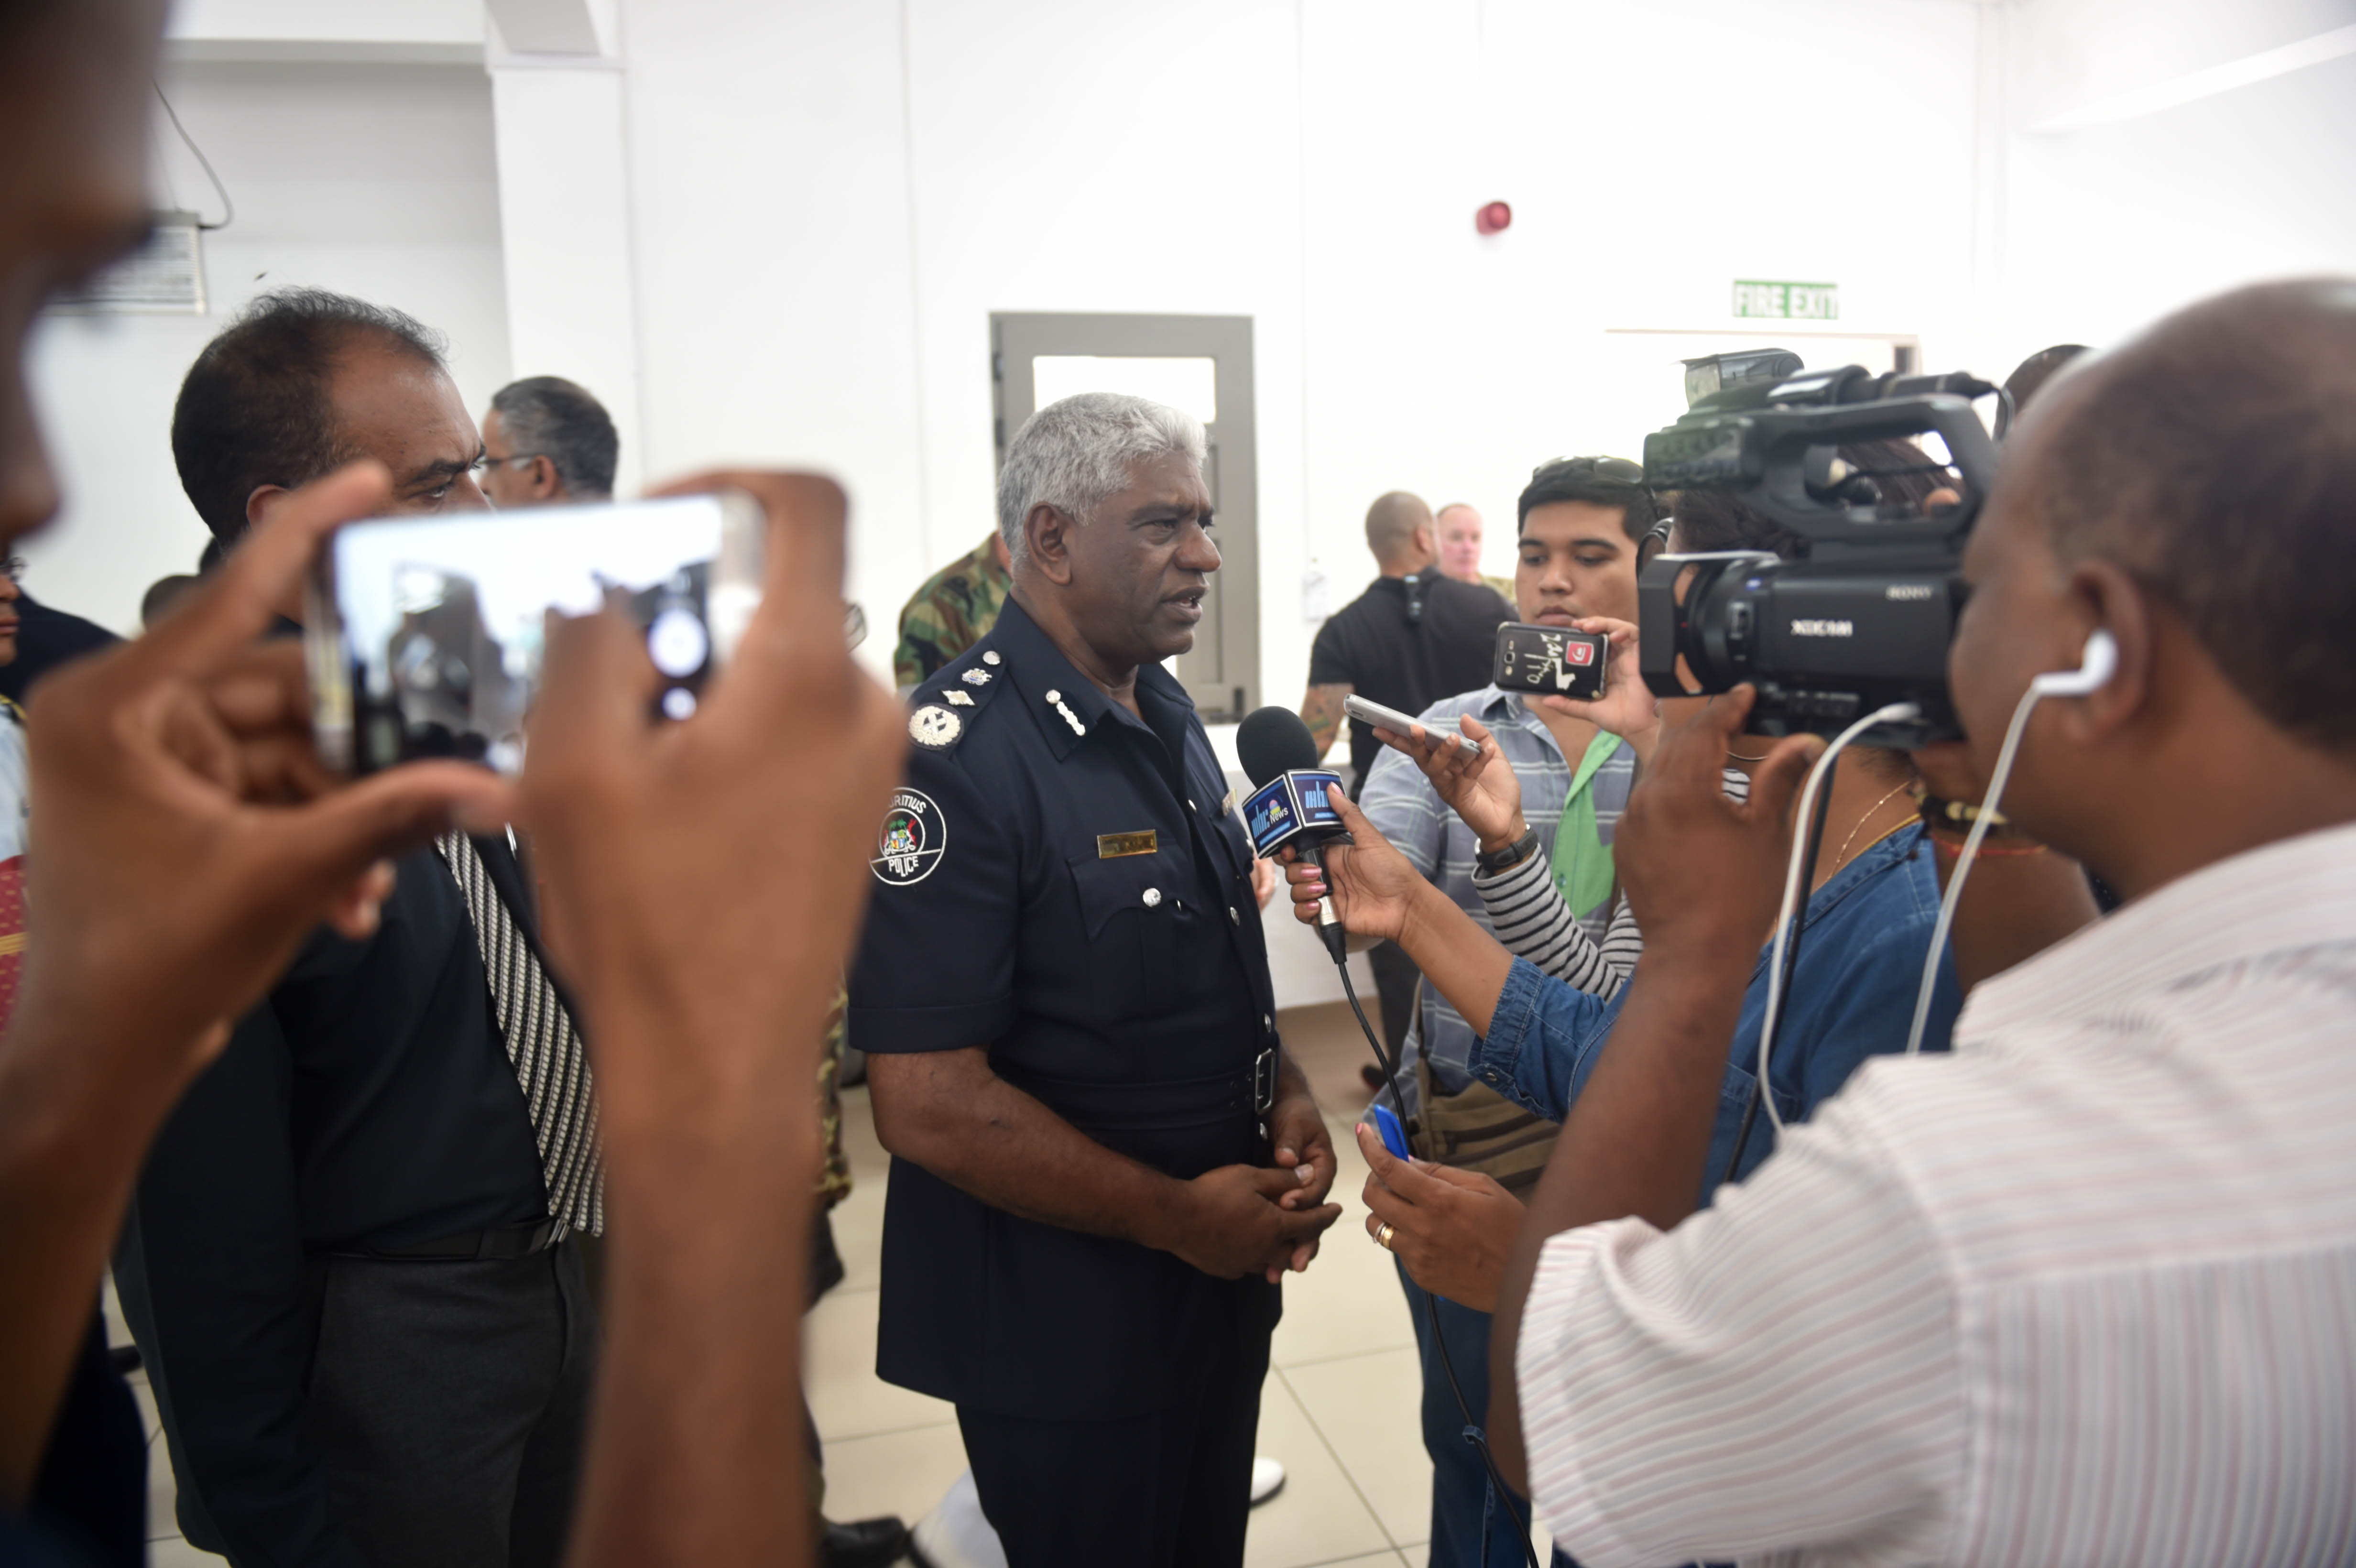 LE CHALAND, Mauritius (Feb. 8, 2017) Karl Mario Nobin, Mauritius Police Force Commissioner, speaks to local media at the Exercise Cutlass Express closing ceremony Feb. 8, 2017. Exercise Cutlass Express 2017, sponsored by U.S. Africa Command and conducted by U.S. Naval Forces Africa, is designed to assess and improve combined maritime law enforcement capacity and promote national and regional security in East Africa. (U.S. Navy photo by Mass Communication Specialist 1st Class Justin Stumberg/Released)